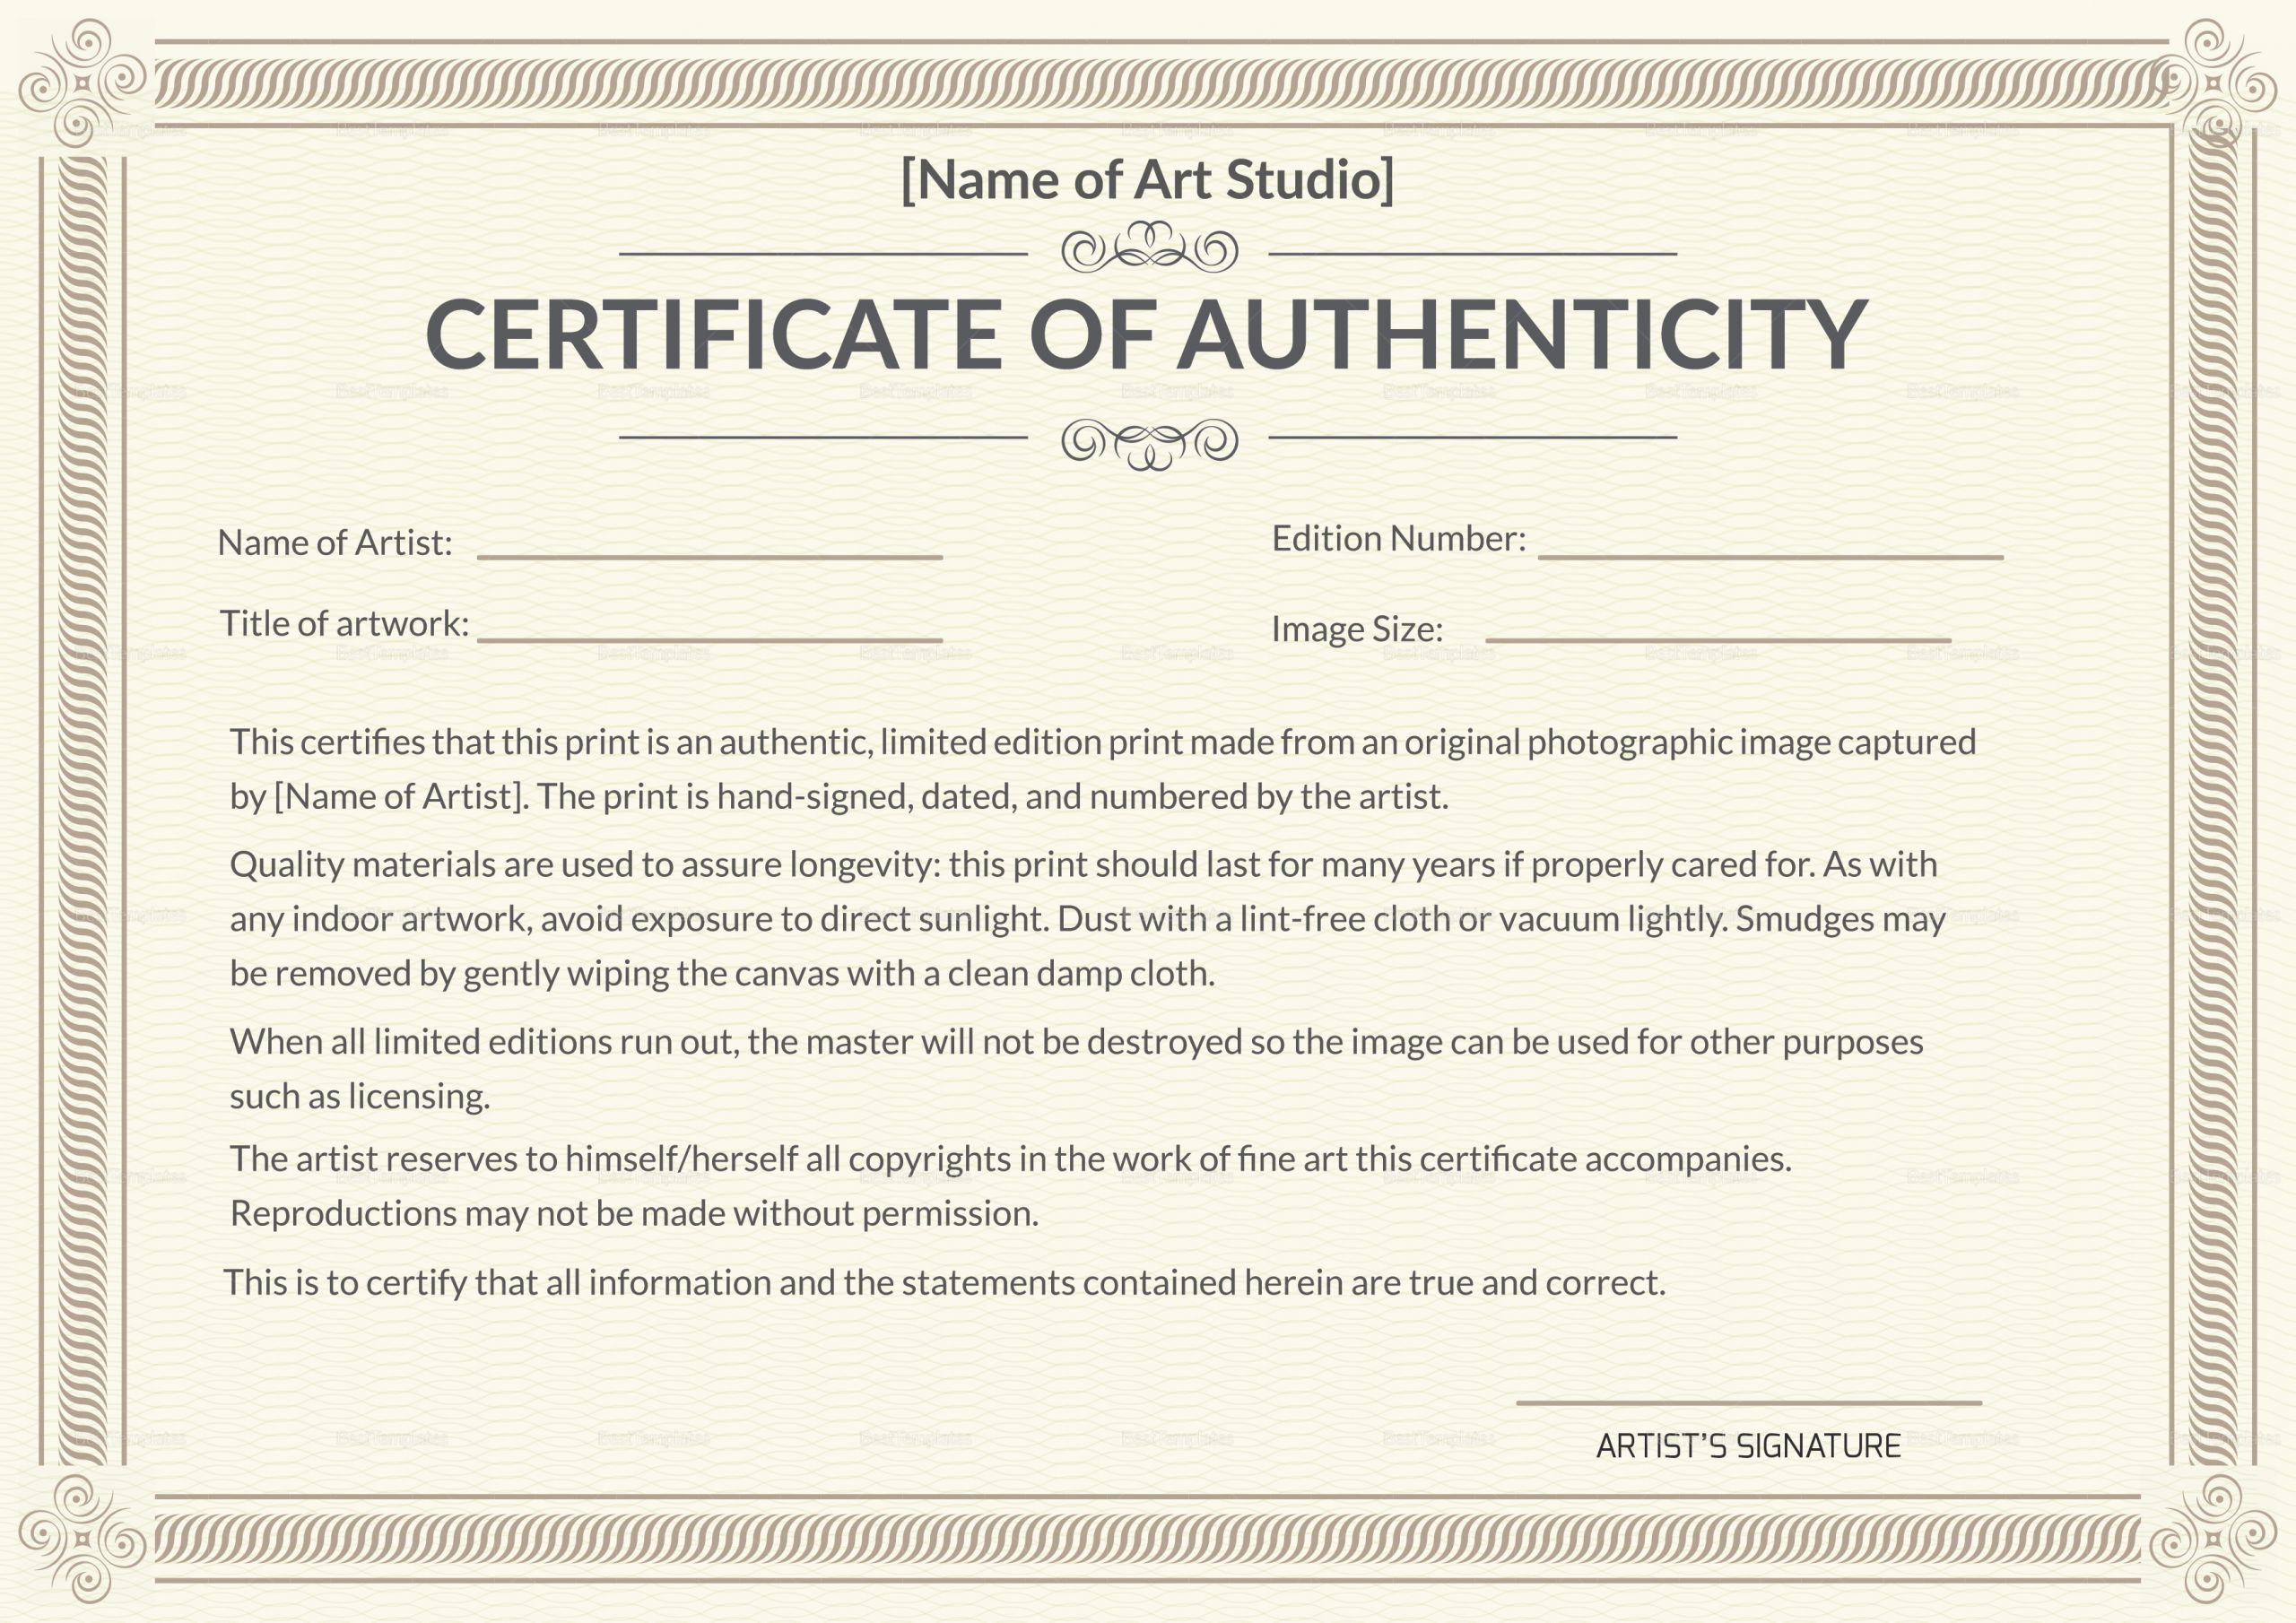 Free Certificate Of Authenticity Template Fresh Printable Authenticity Certificate Design Template In Psd